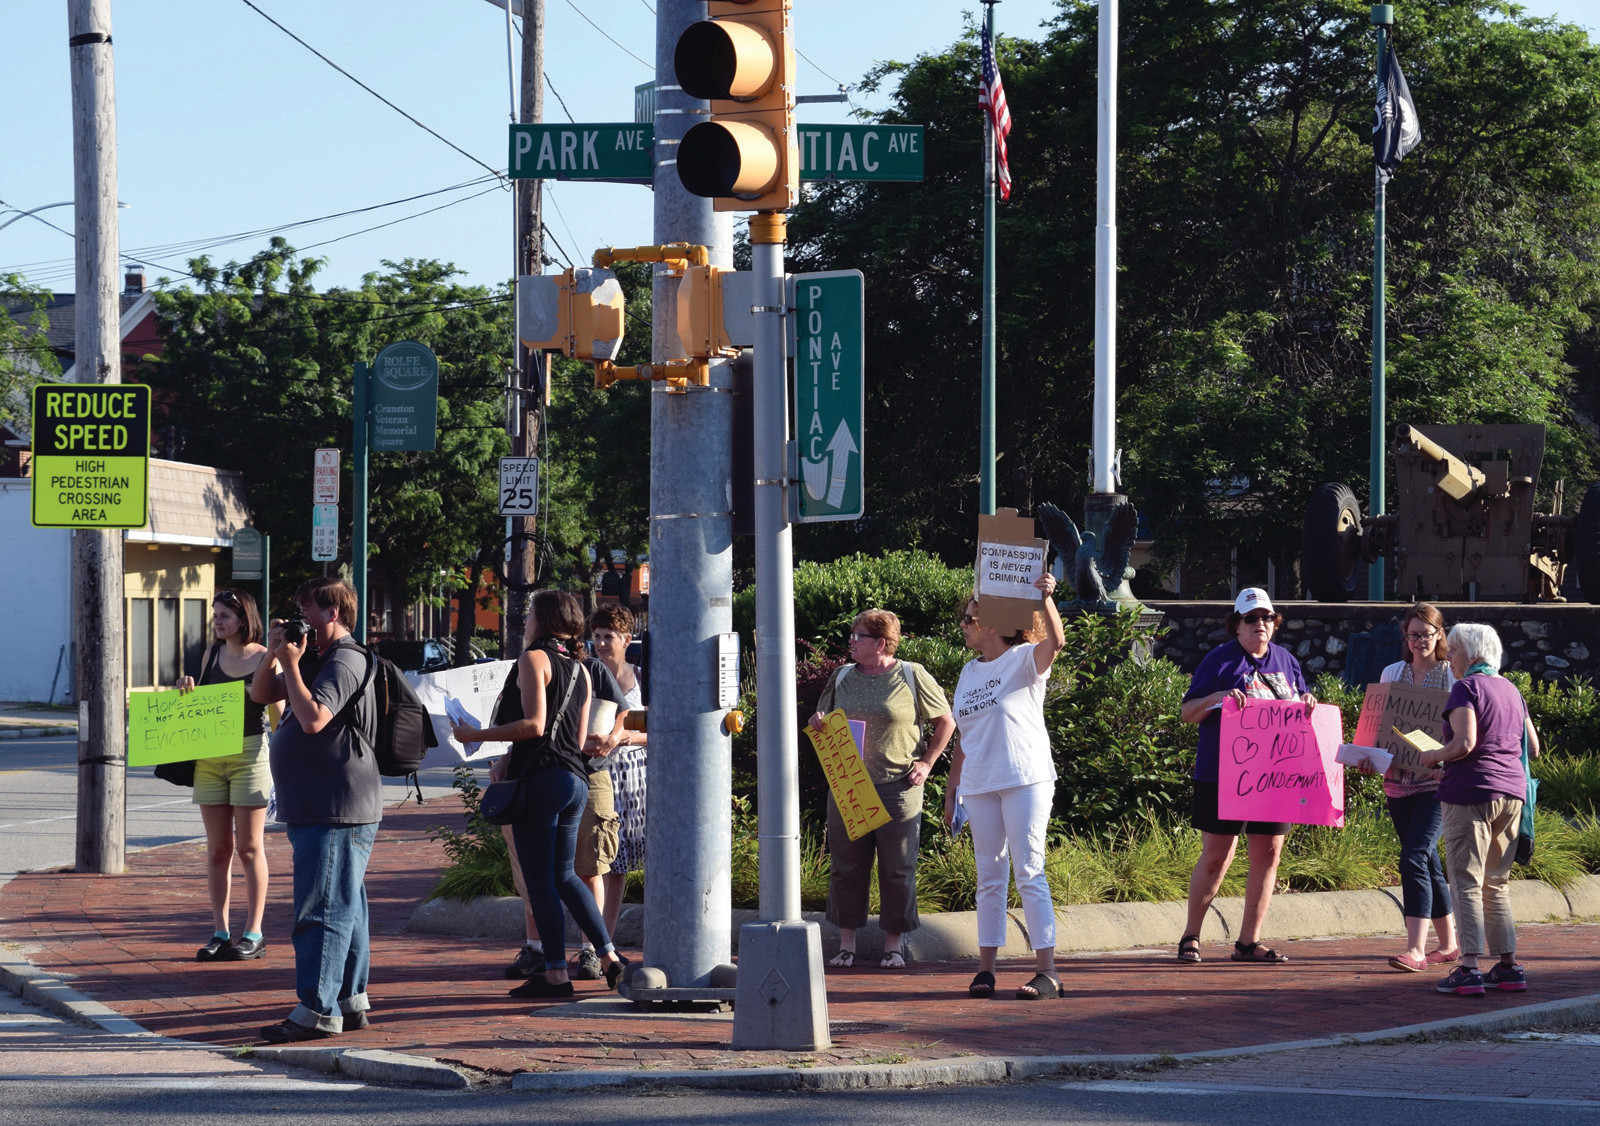 AT A CROSSROADS: Protesters gathered at the intersection of Pontiac Avenue, Park Avenue and Rolfe Square to speak out against the Cranston panhandling ordinance.